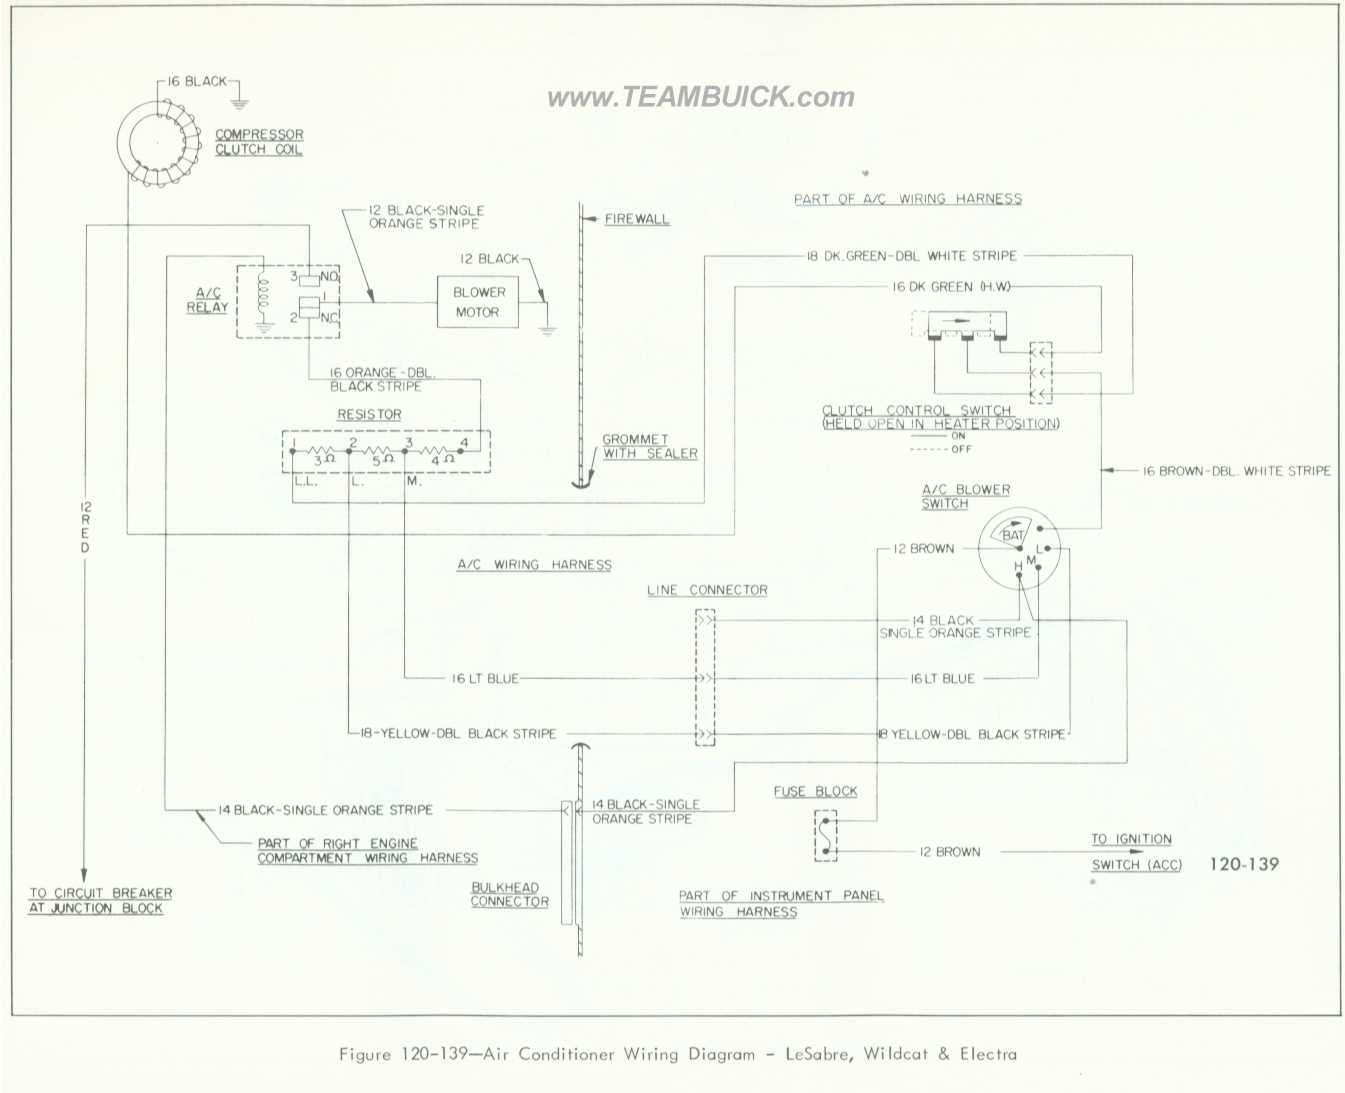 1967 Buick Lesabre Wiring Diagrams 1966 Wildcat Diagram Reinvent Your Electra Air Conditioner Rh Teambuick Com 225 1964